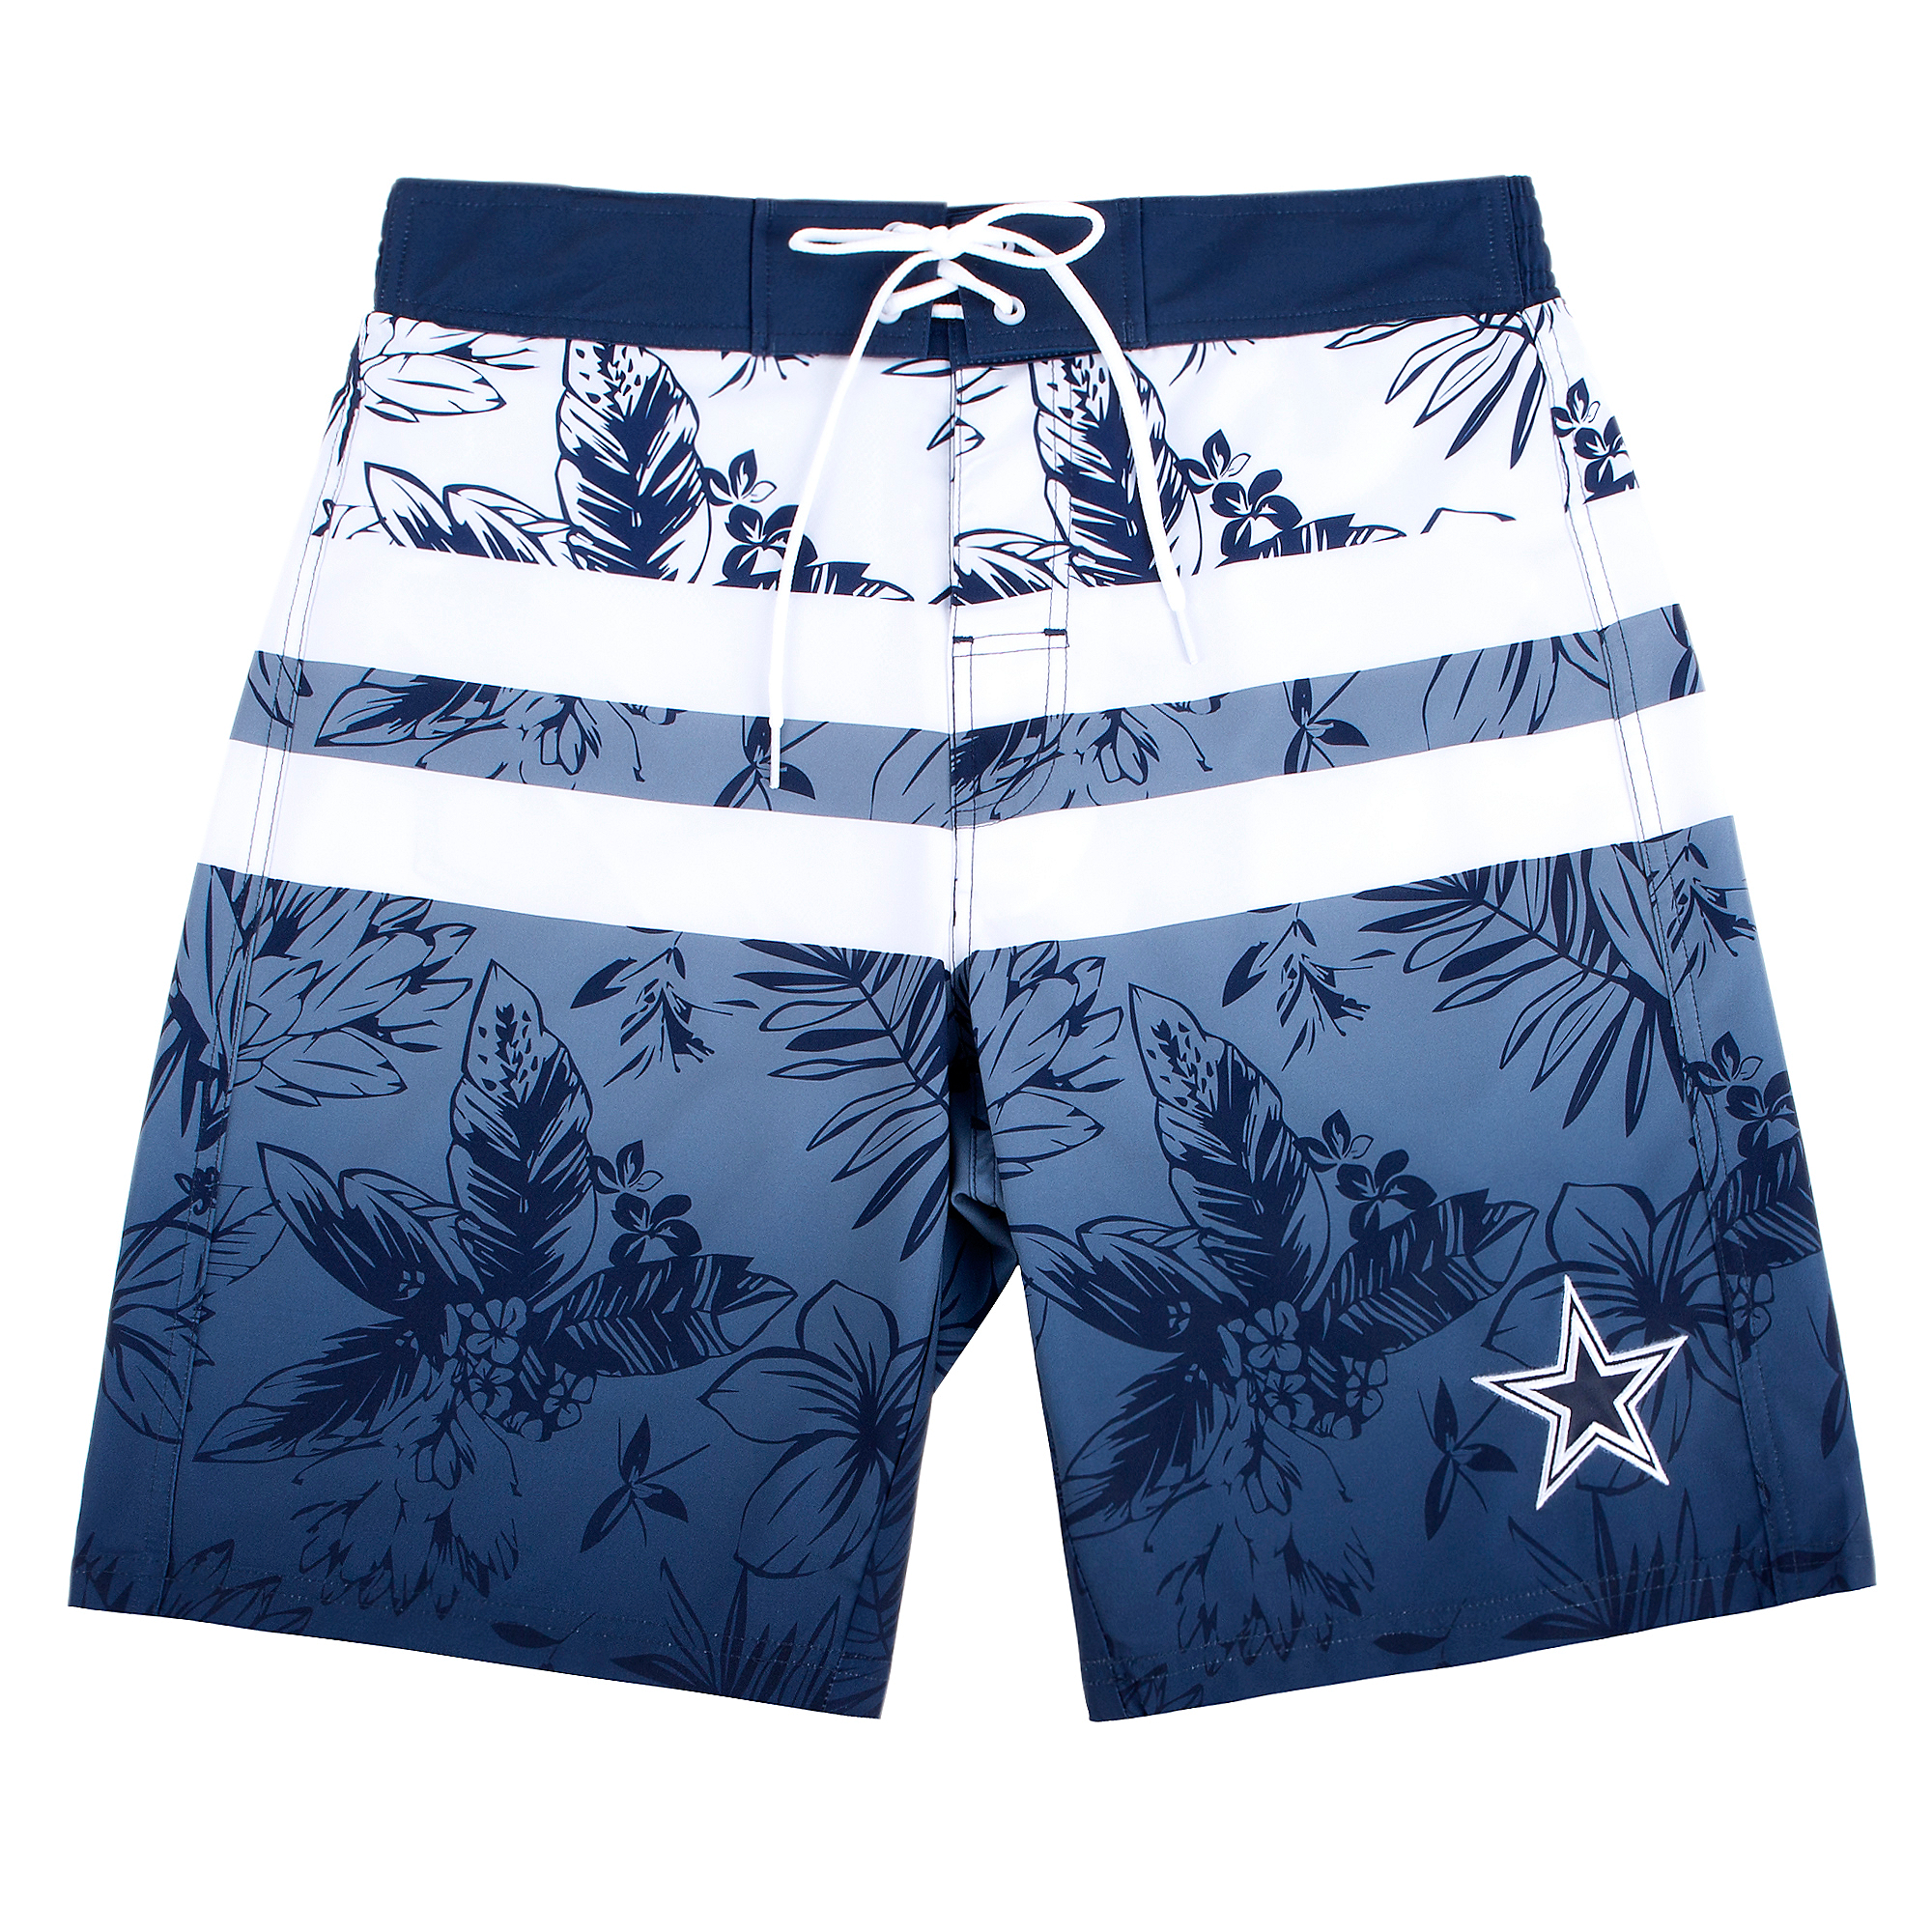 Dallas Cowboys Mens Free Style Swim Trunks